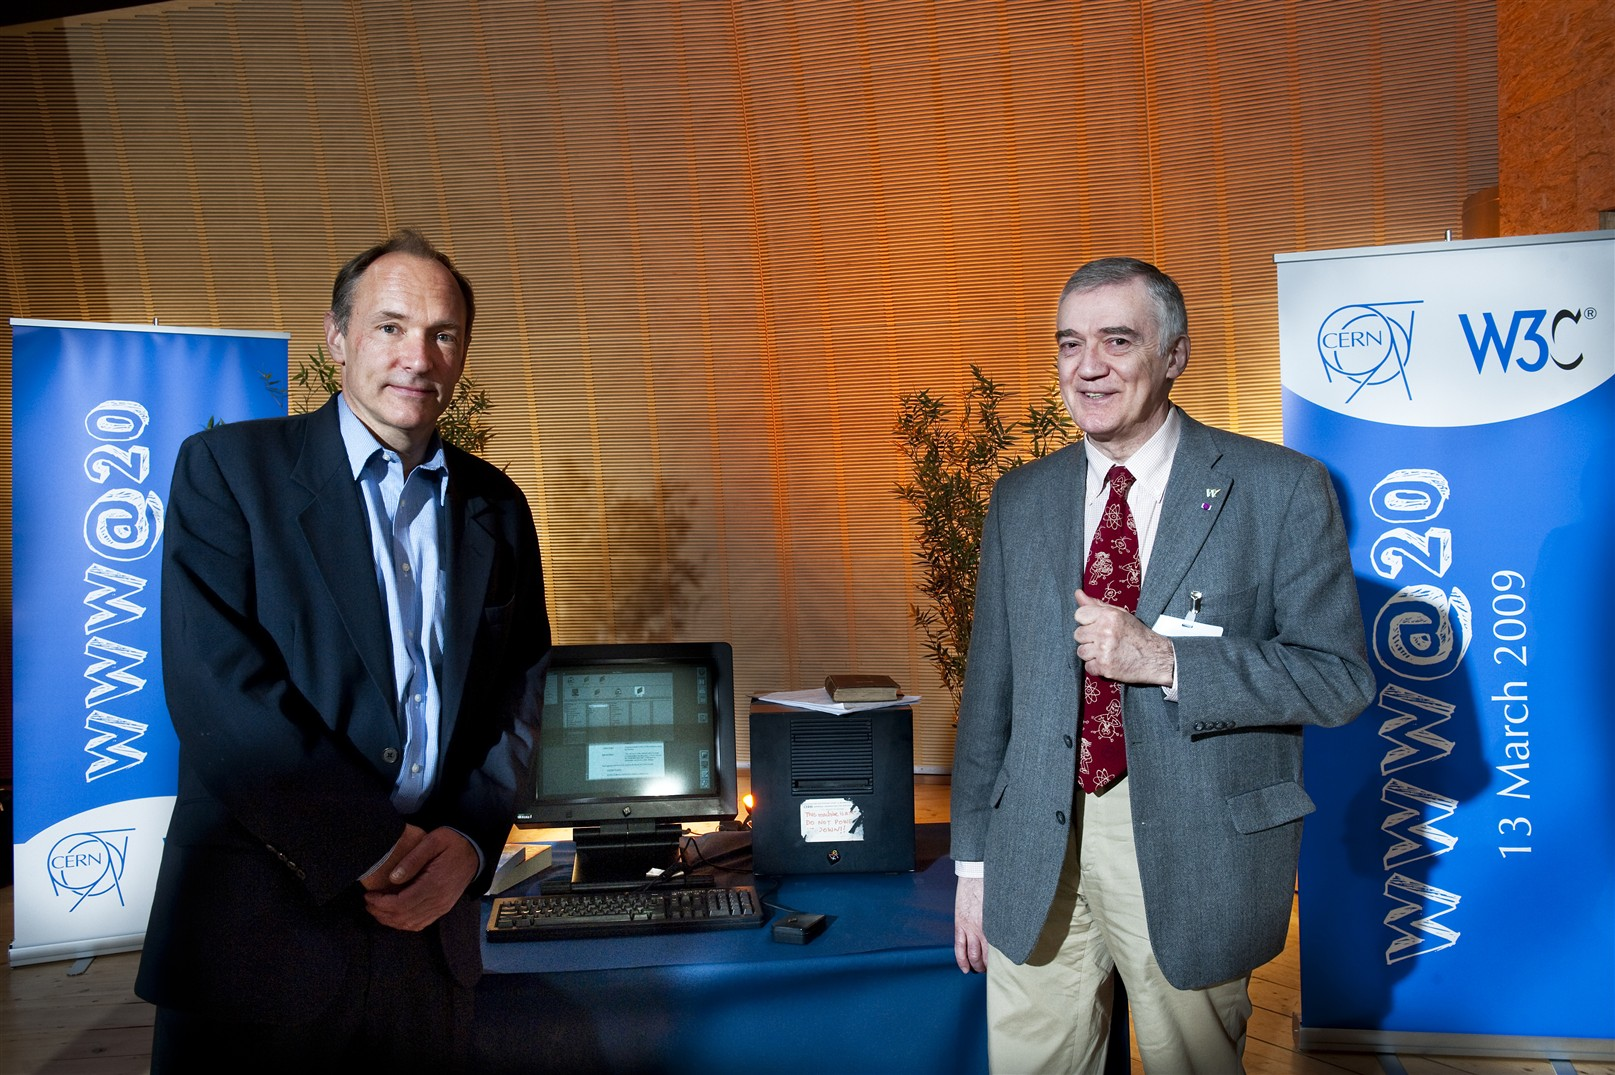 Tim Berners Lee, Robert Cailliau and the NeXT computer.